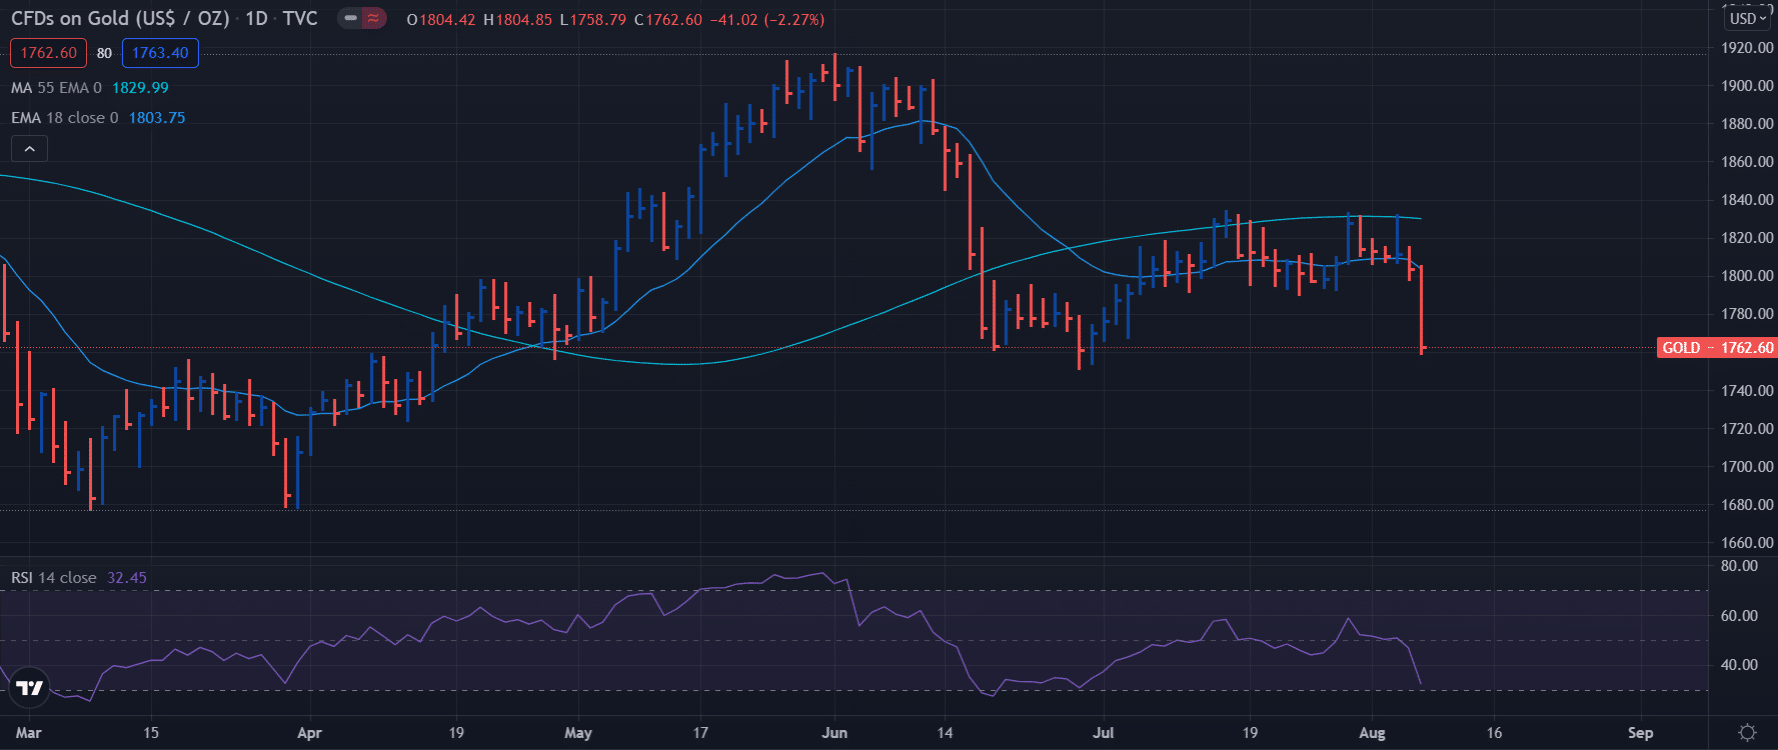 Gold daily chart - weekly forecast